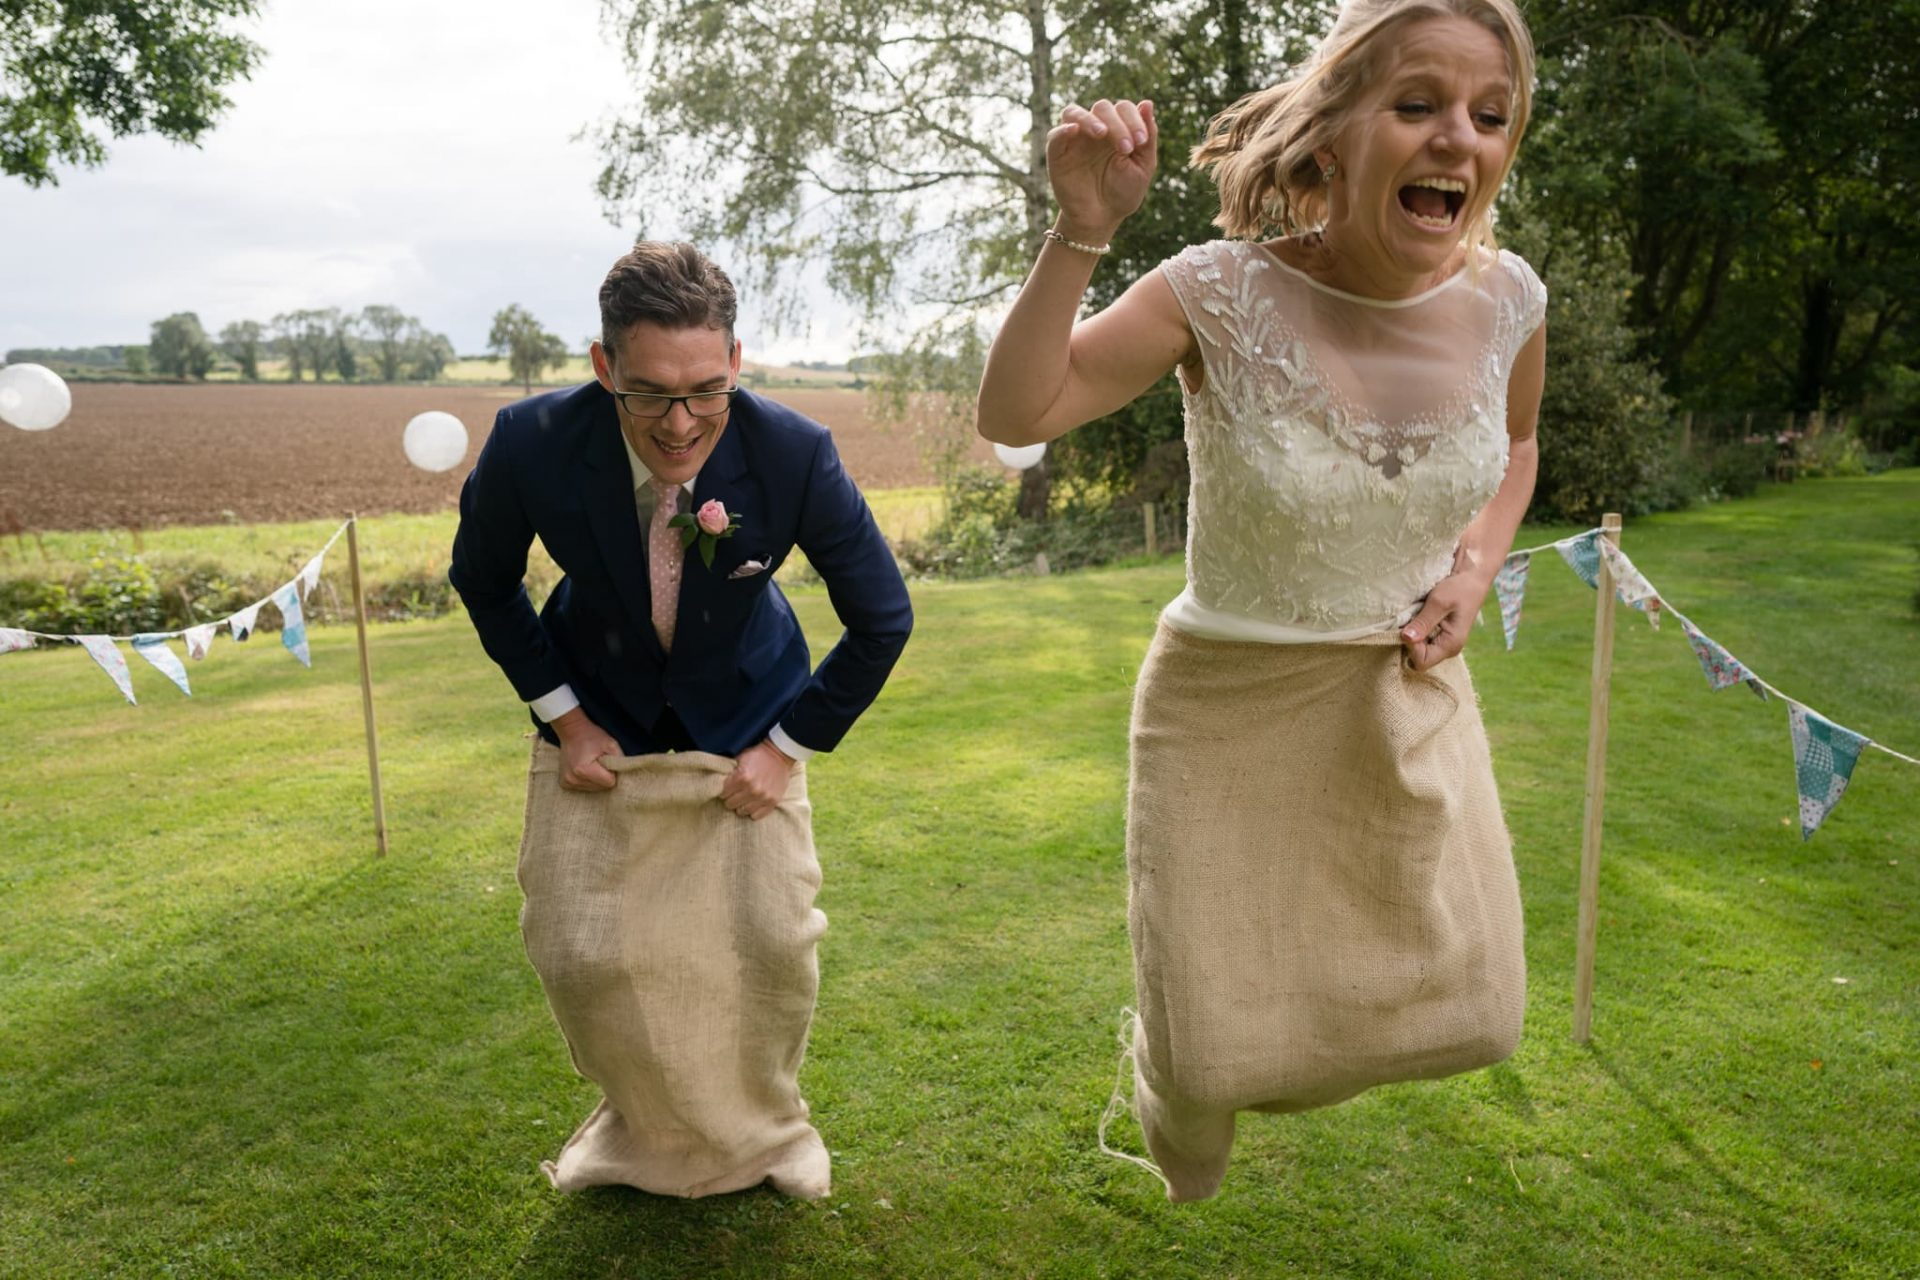 Bride and groom competing in a sack race